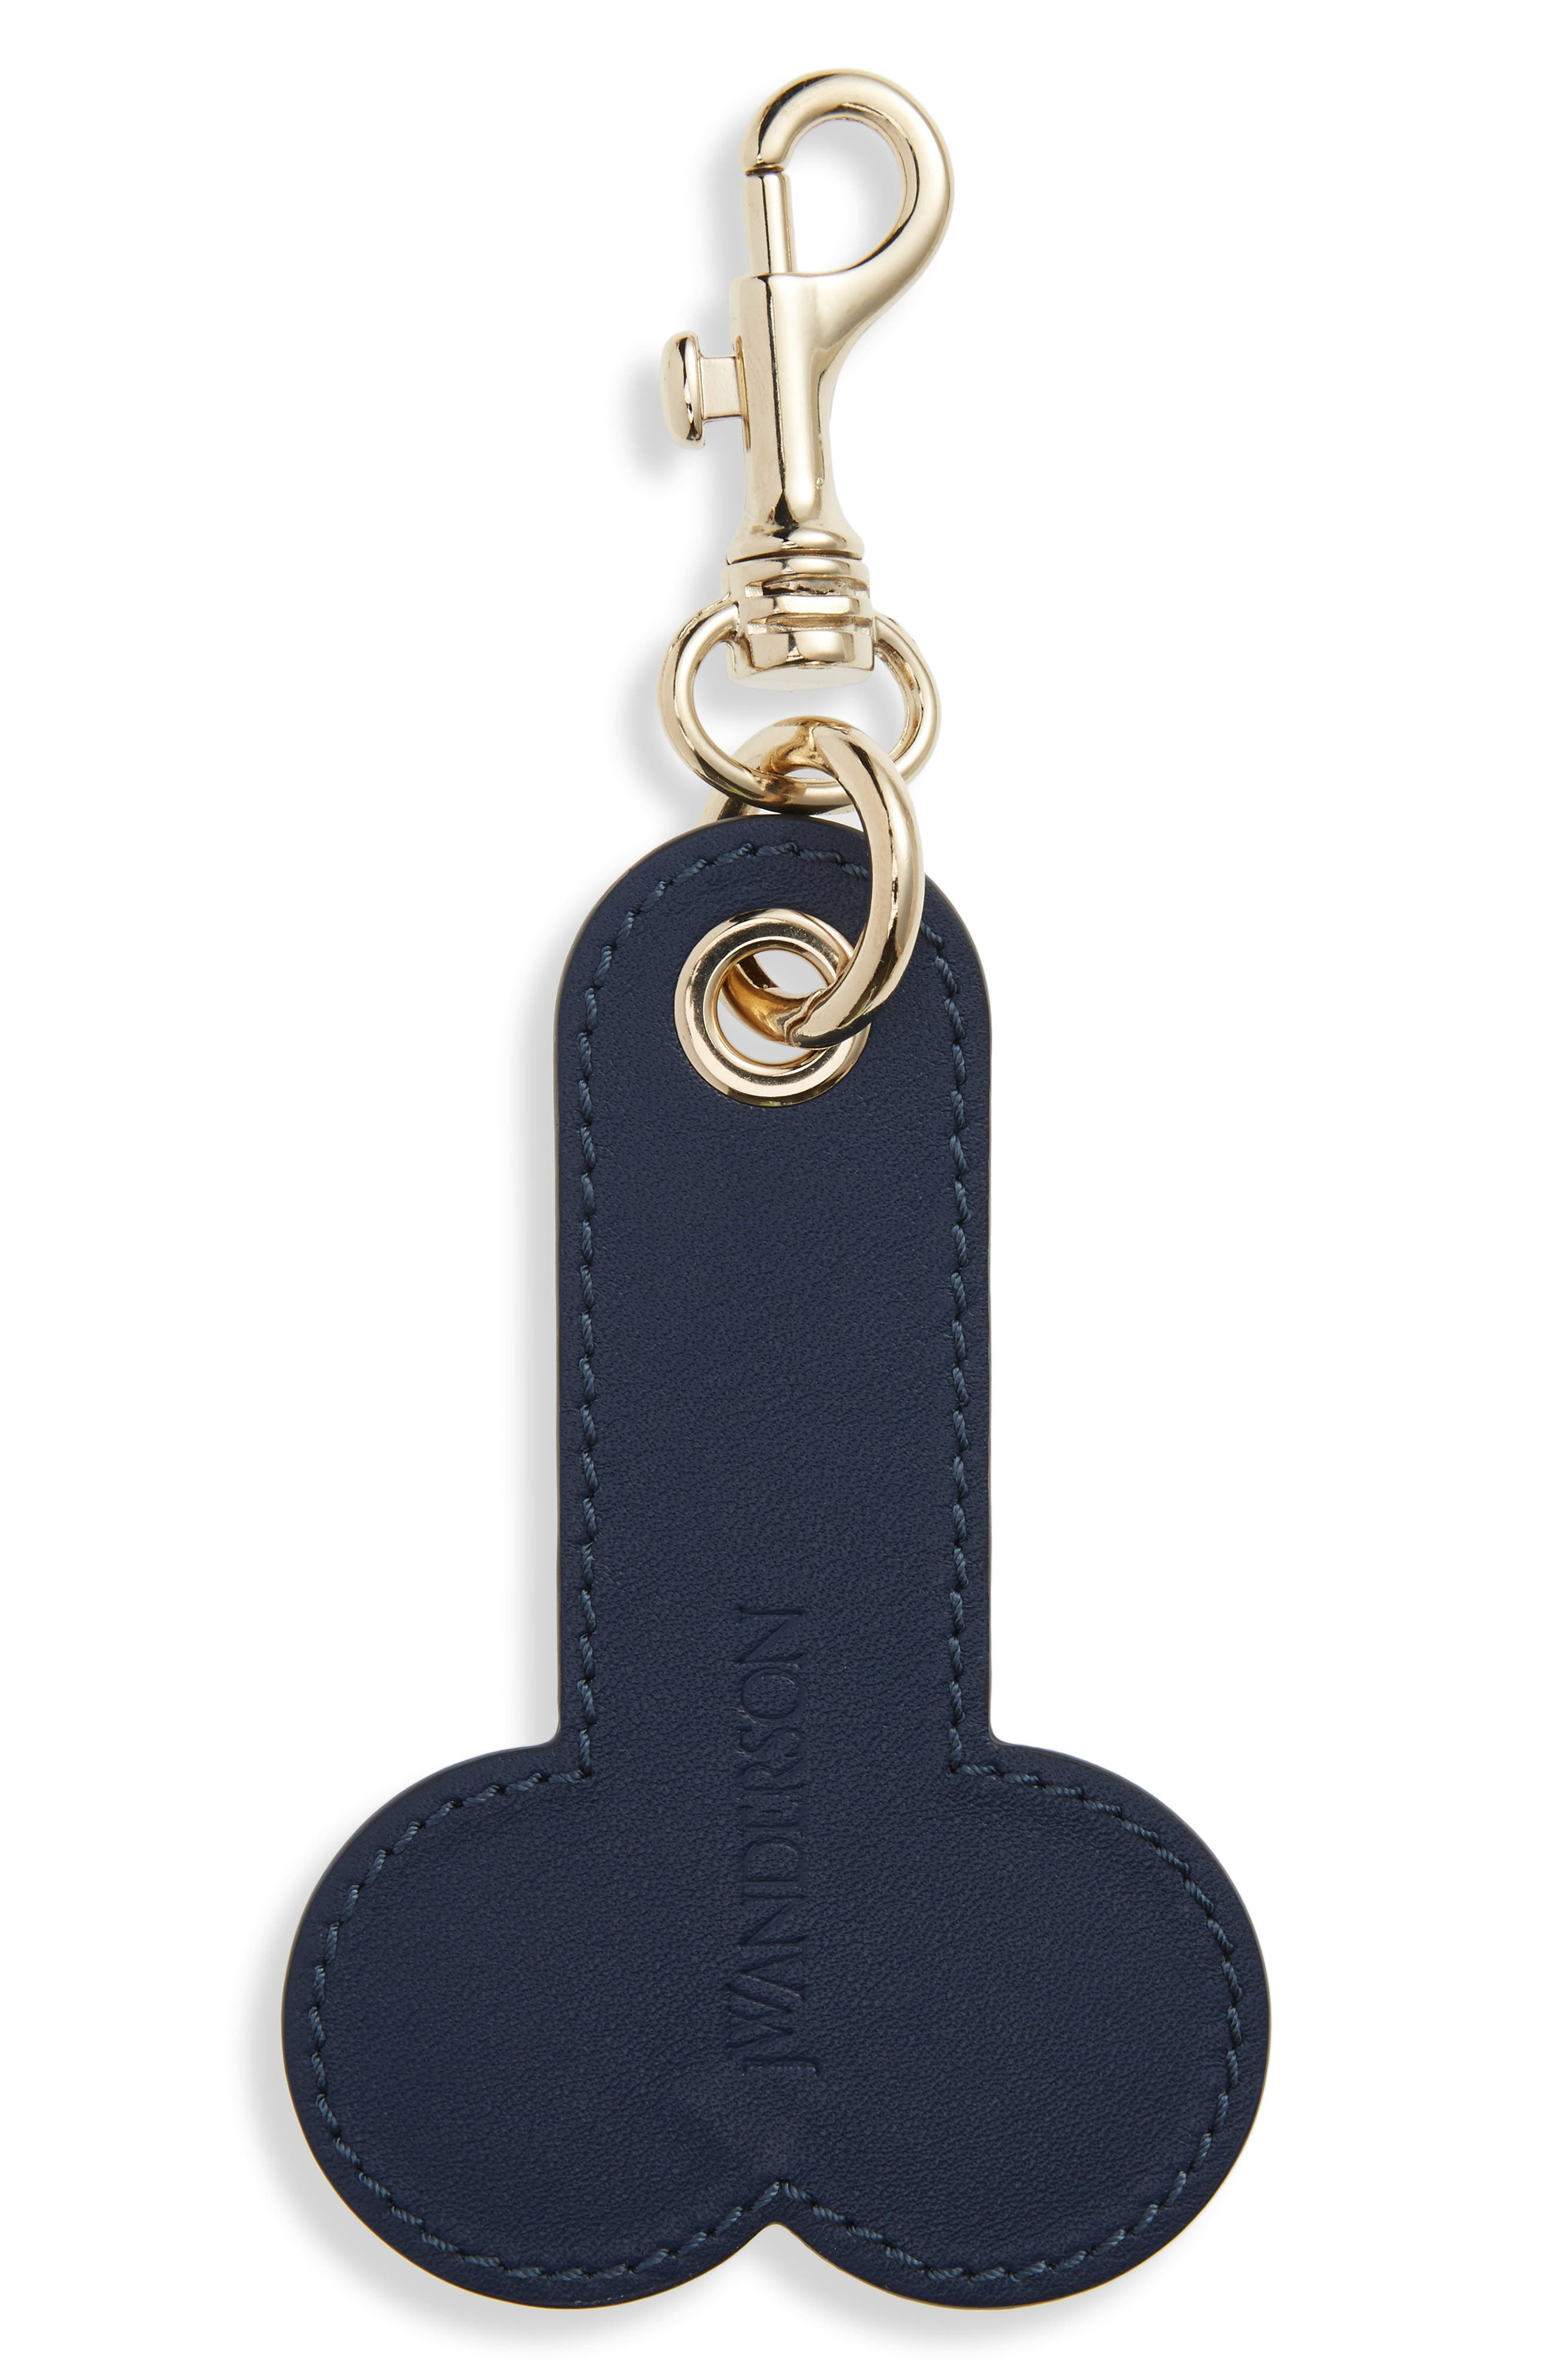 Logo Embossed Leather Bag Charm,                             Main thumbnail 1, color,                             Navy